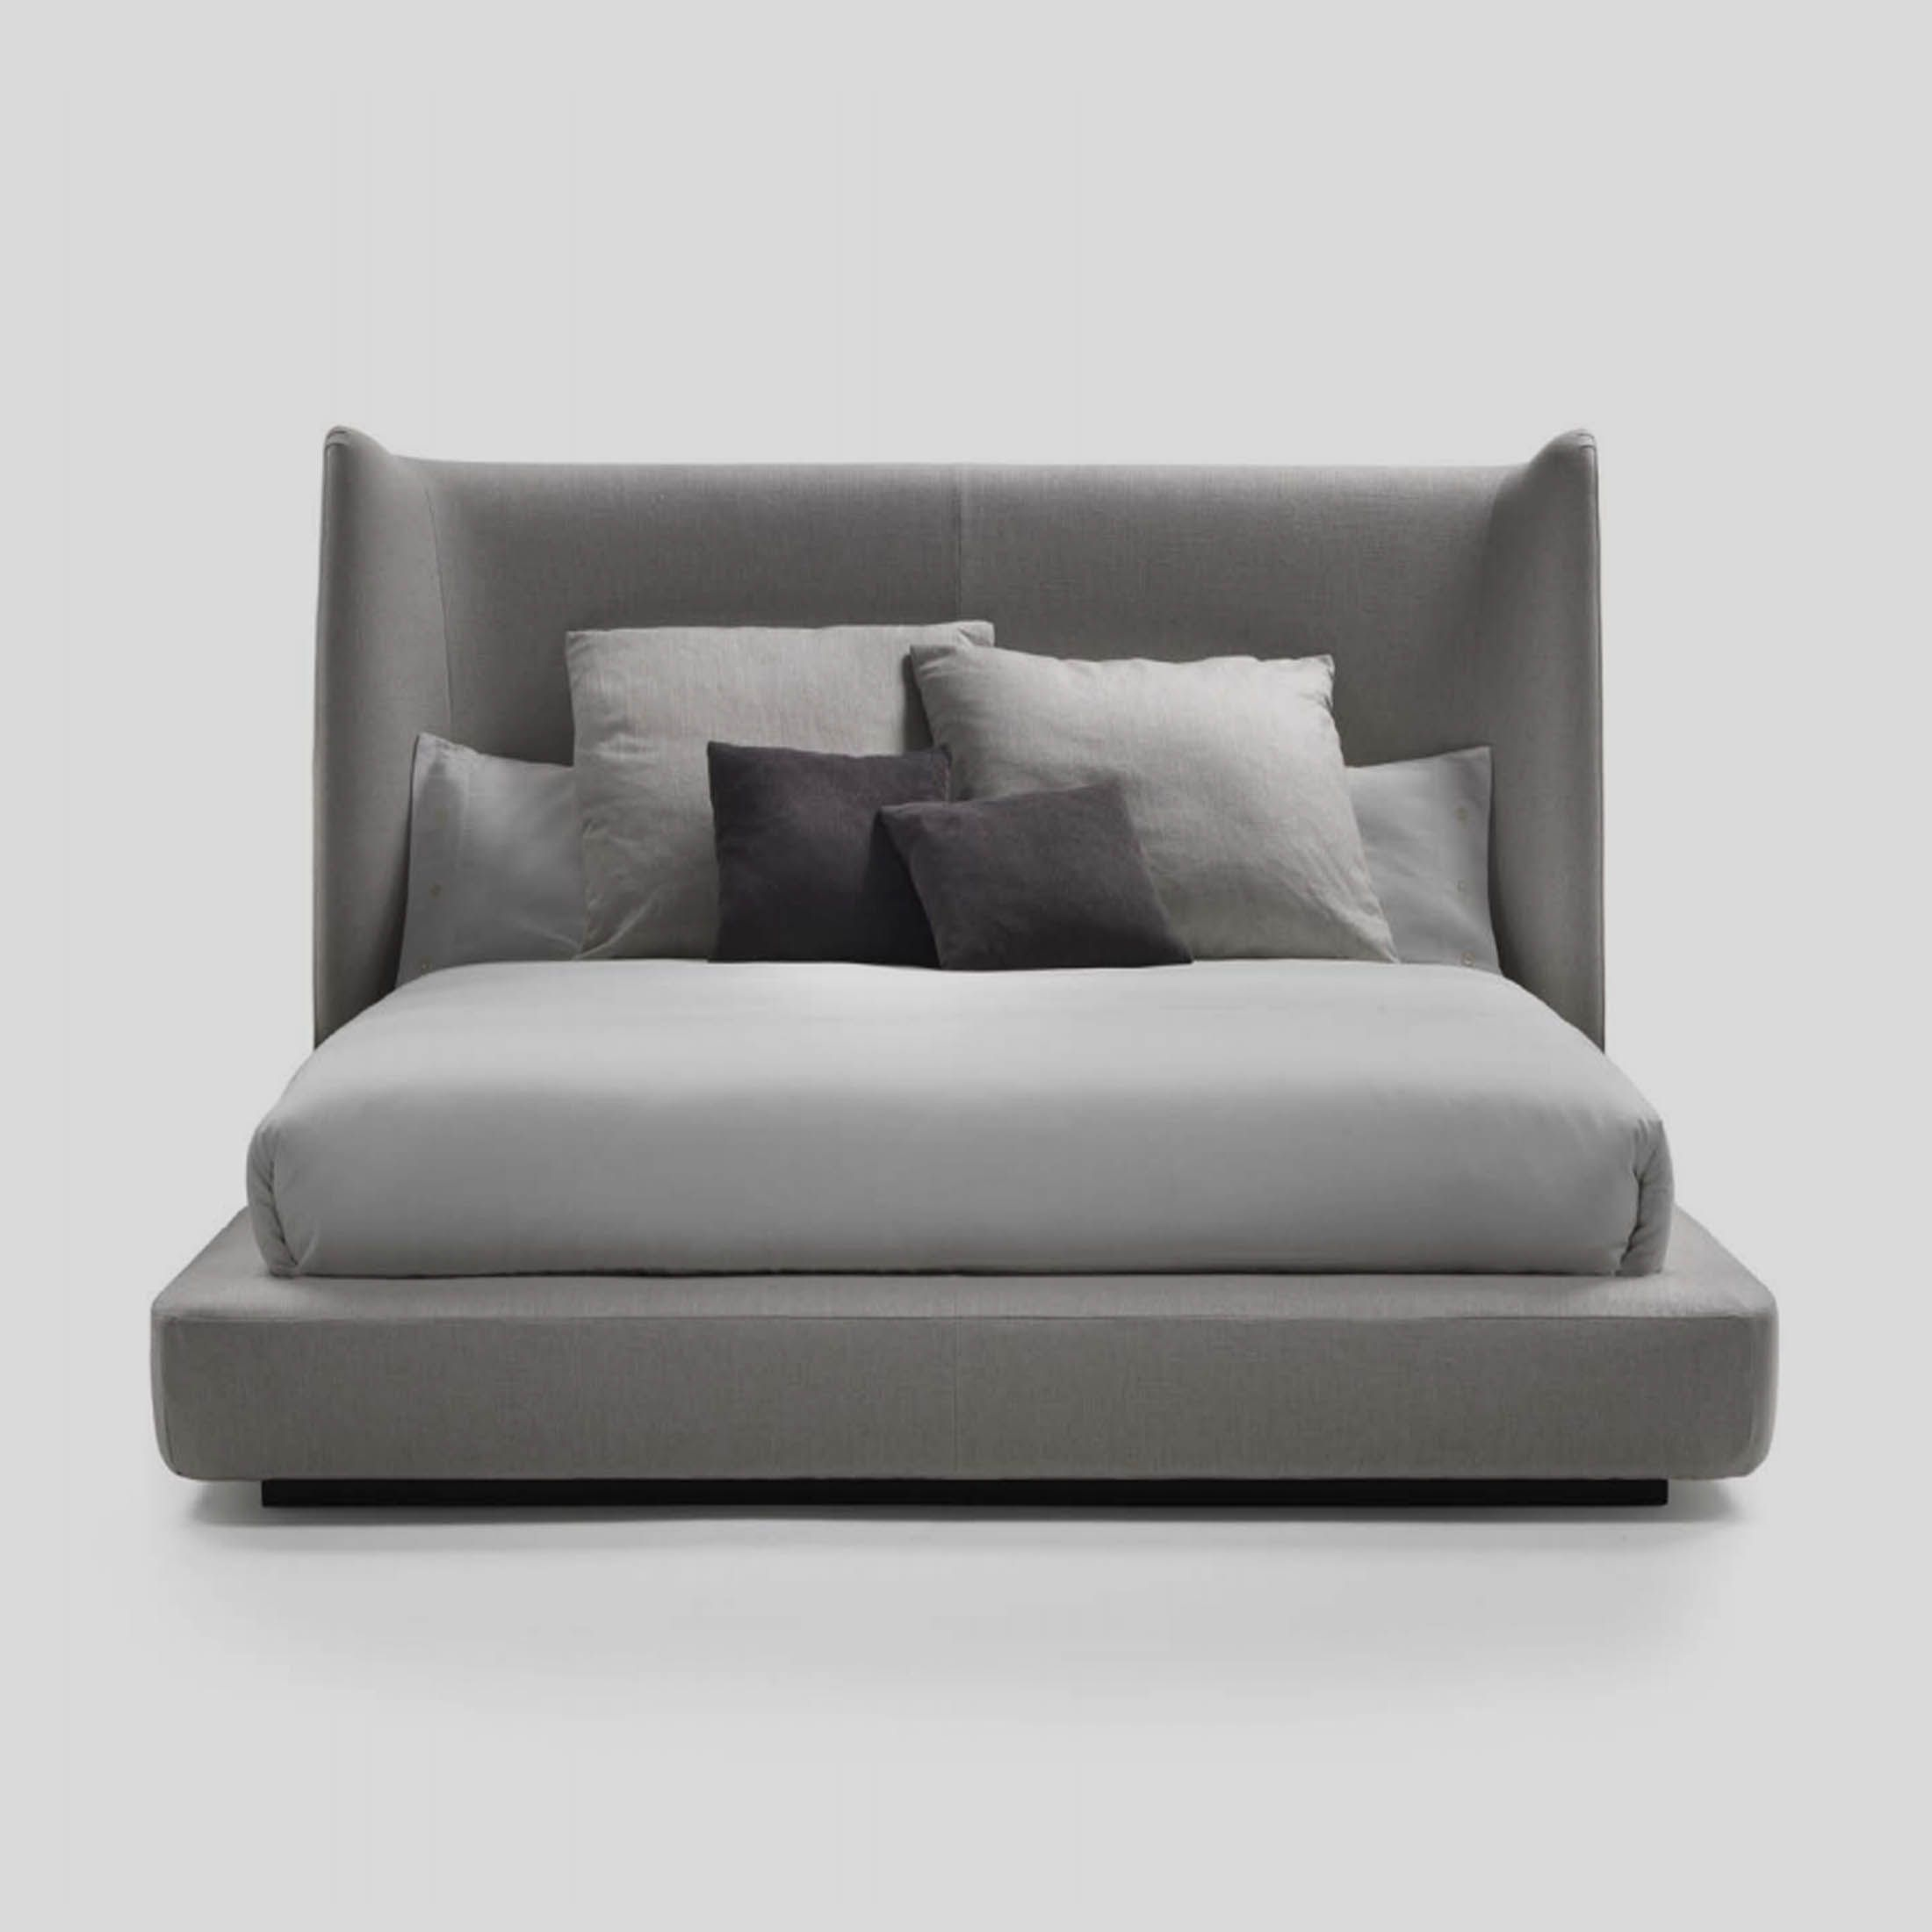 Midnight Is A Bed Designed By Roberto Lazzeroni For Flexform In